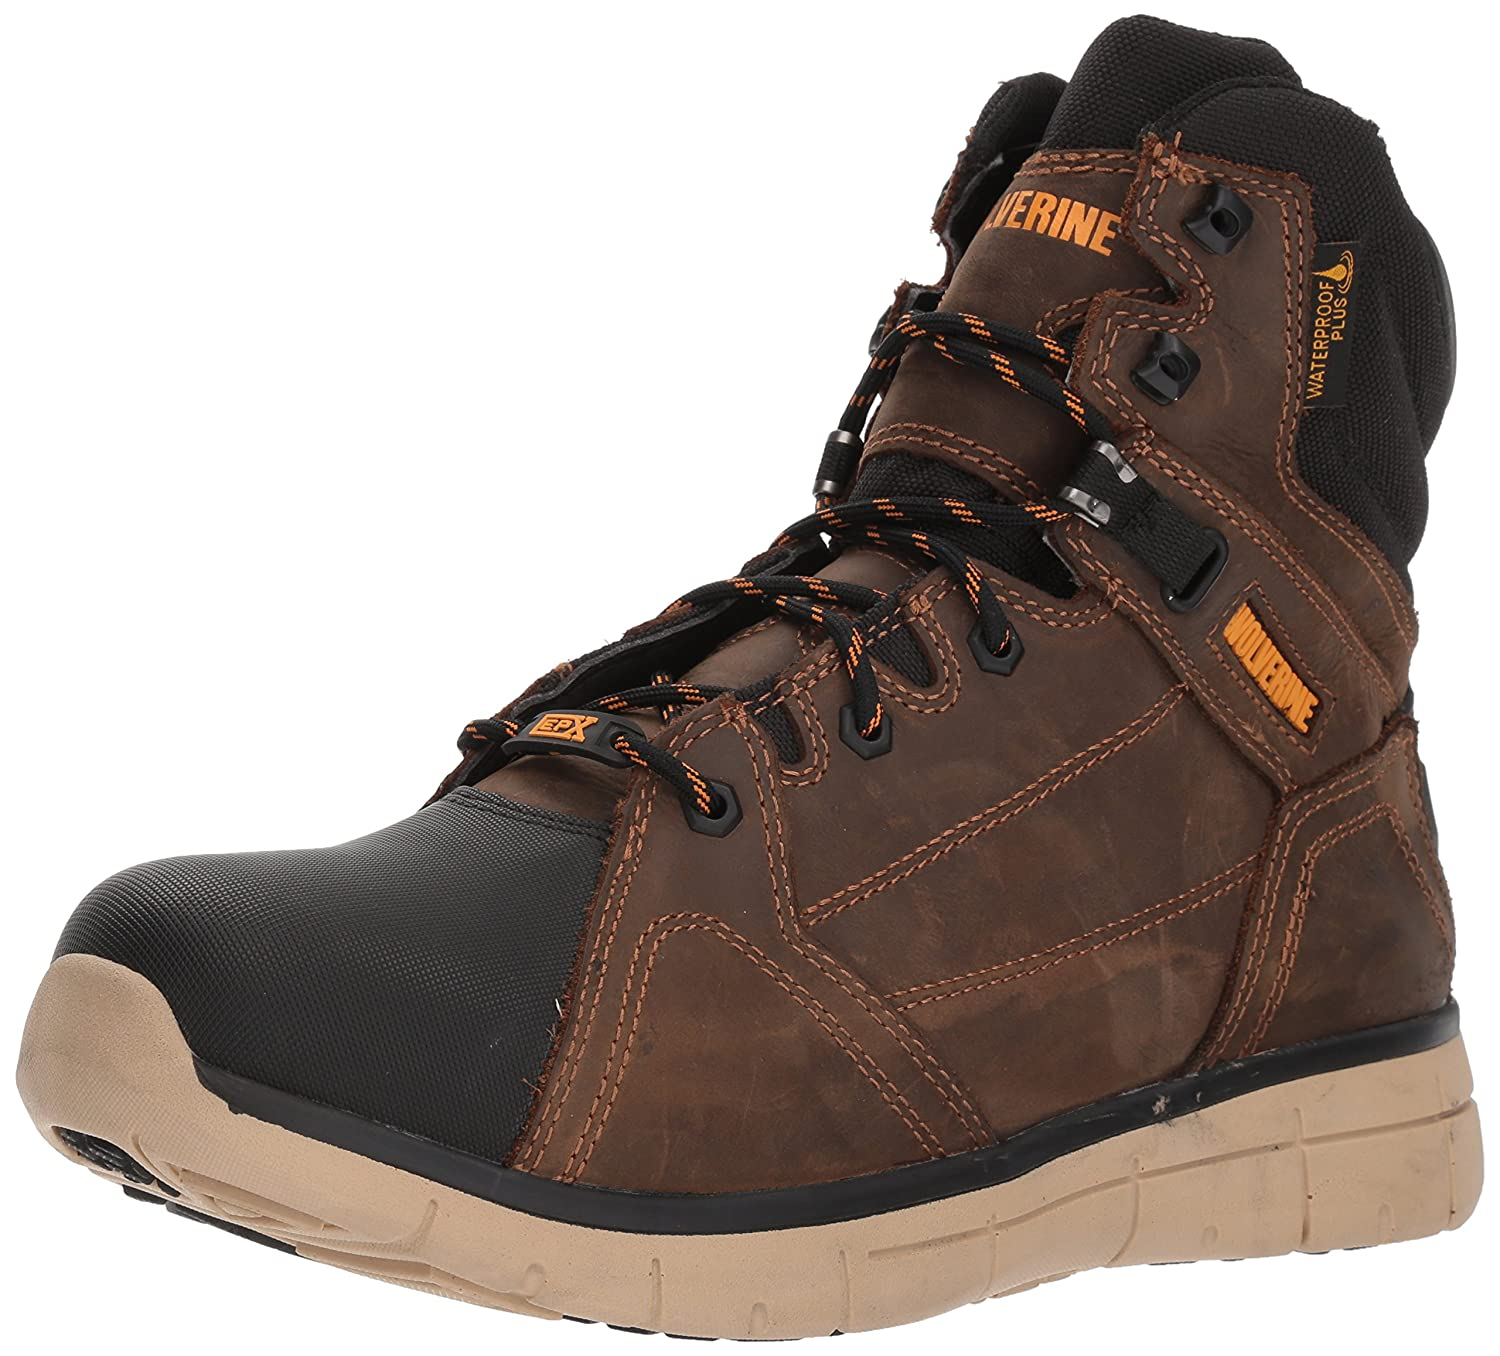 Wolverine メンズ B073P5KN6C 8.5 D(M) US|Summer Brown Summer Brown 8.5 D(M) US